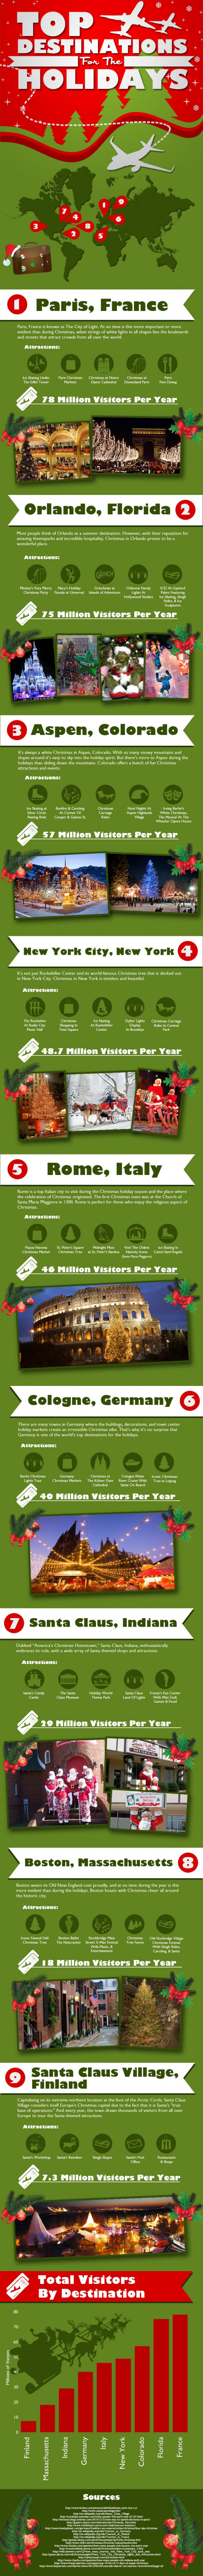 Top Destinations for the Holidays Infographic